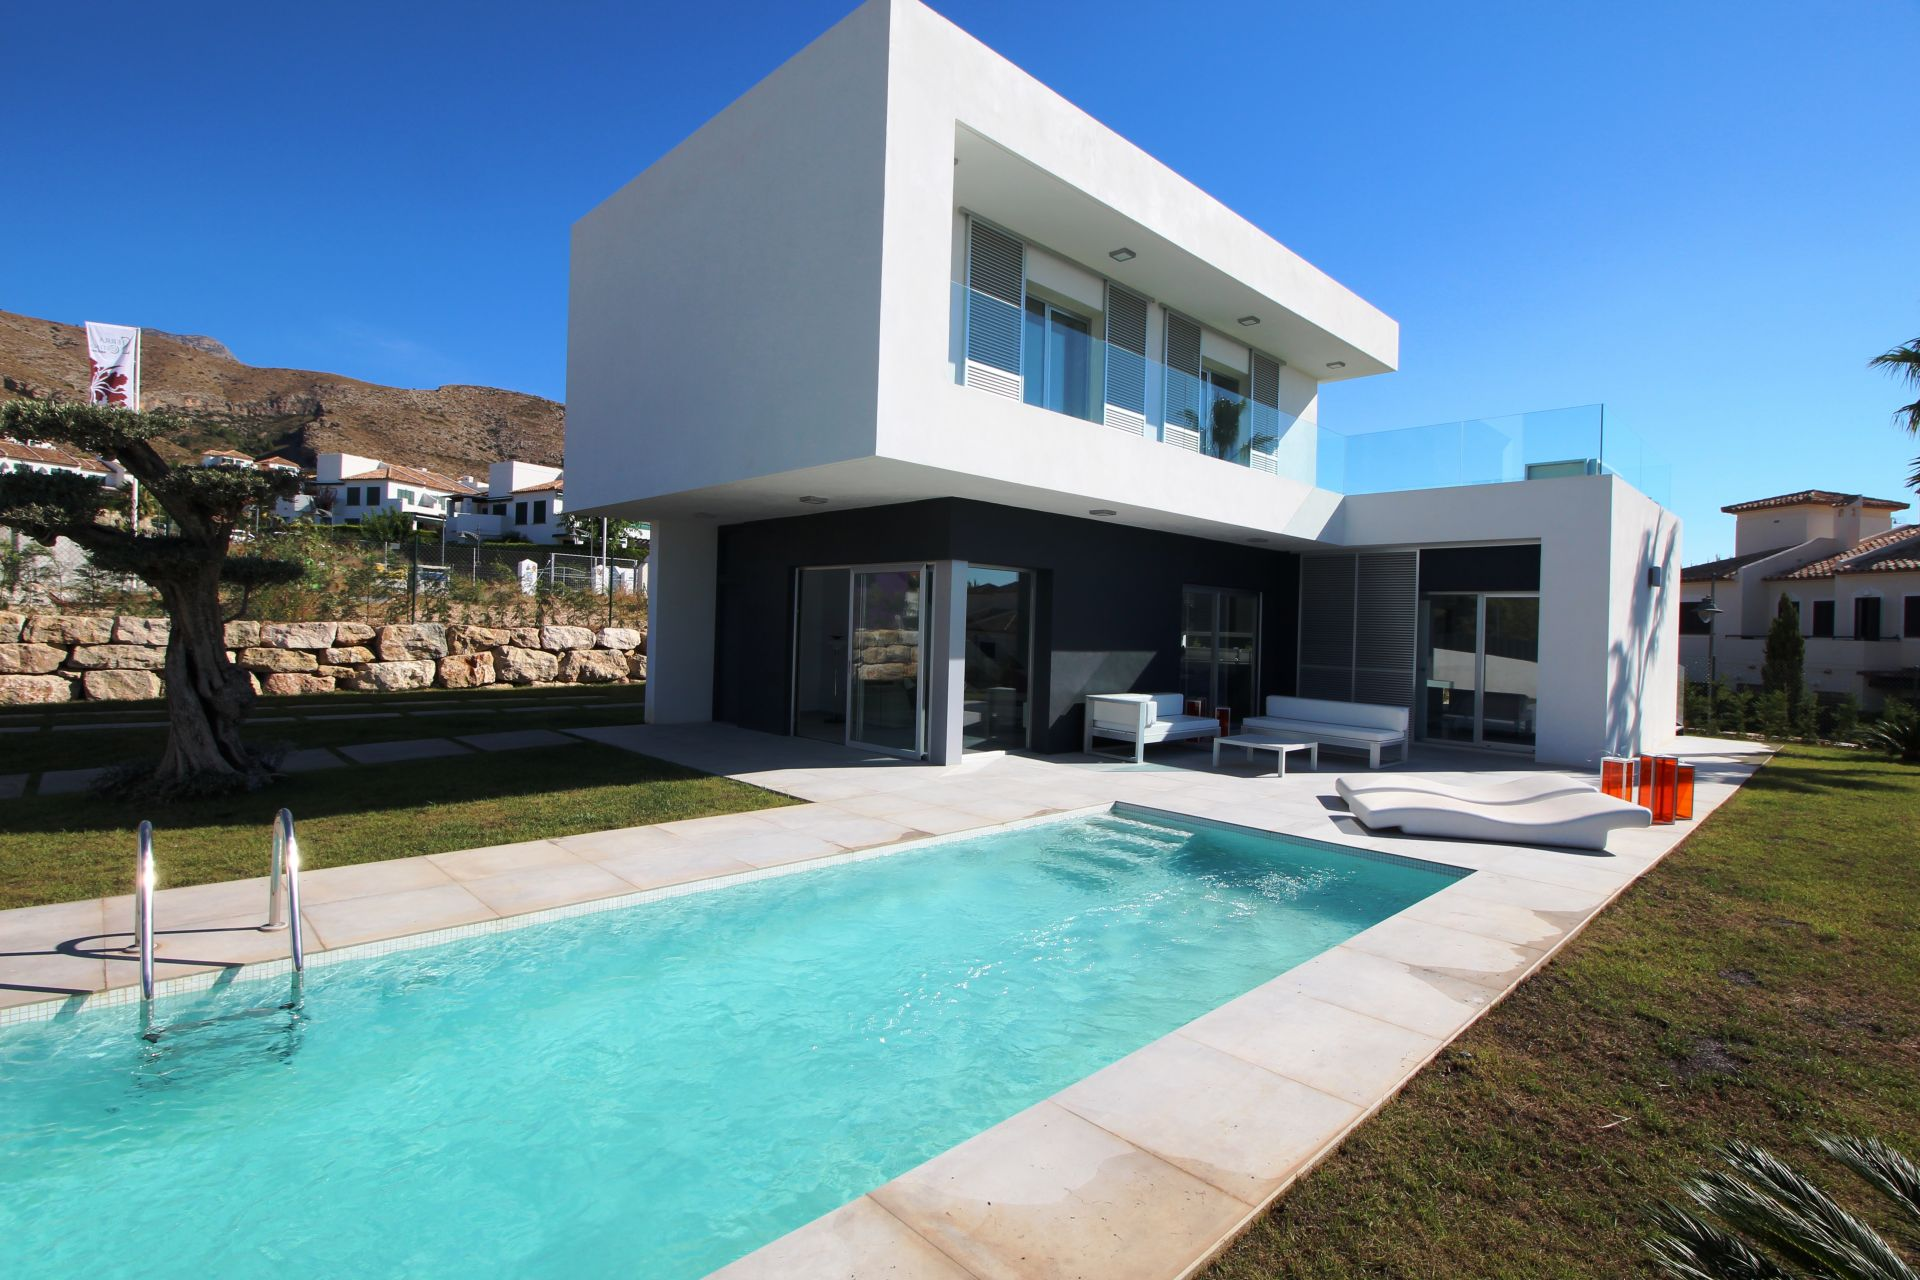 Exclusive villas with 3 bedrooms in Finestrat 1